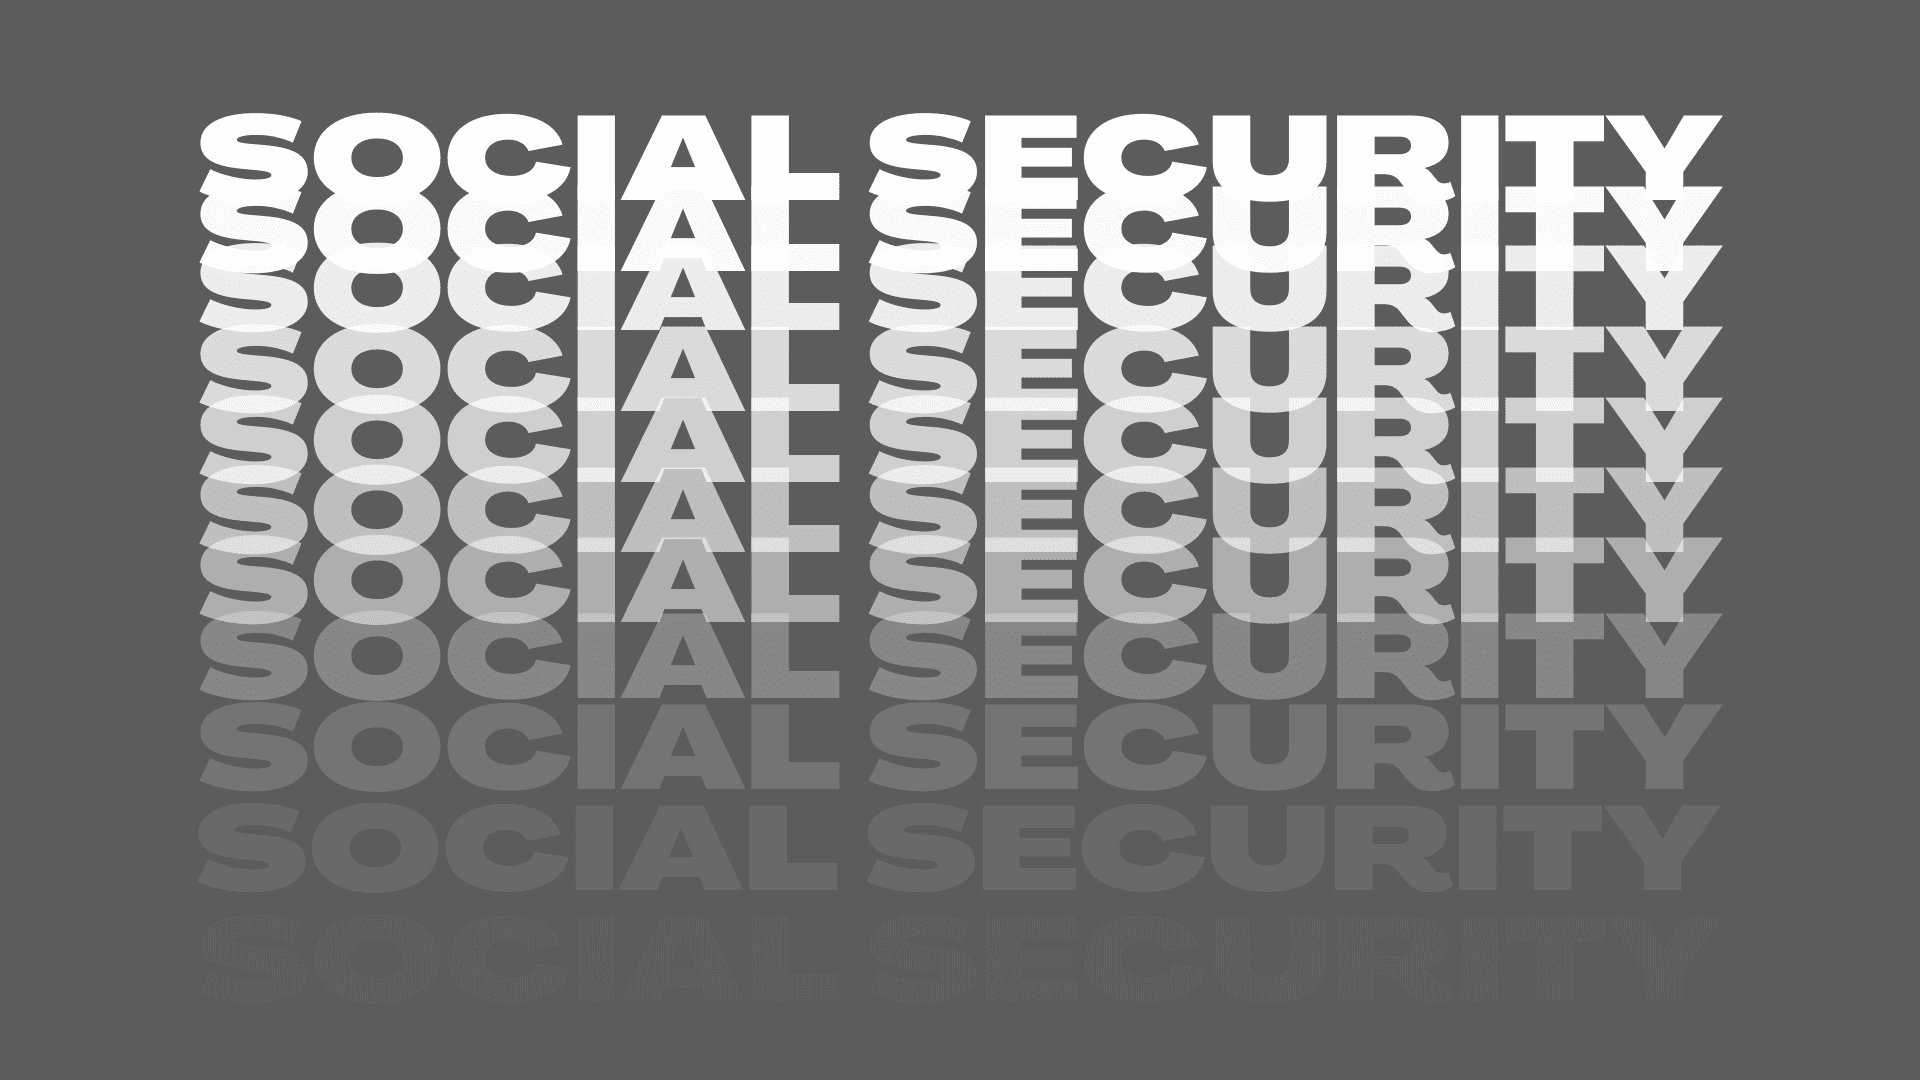 Social Security Webinar August 2020